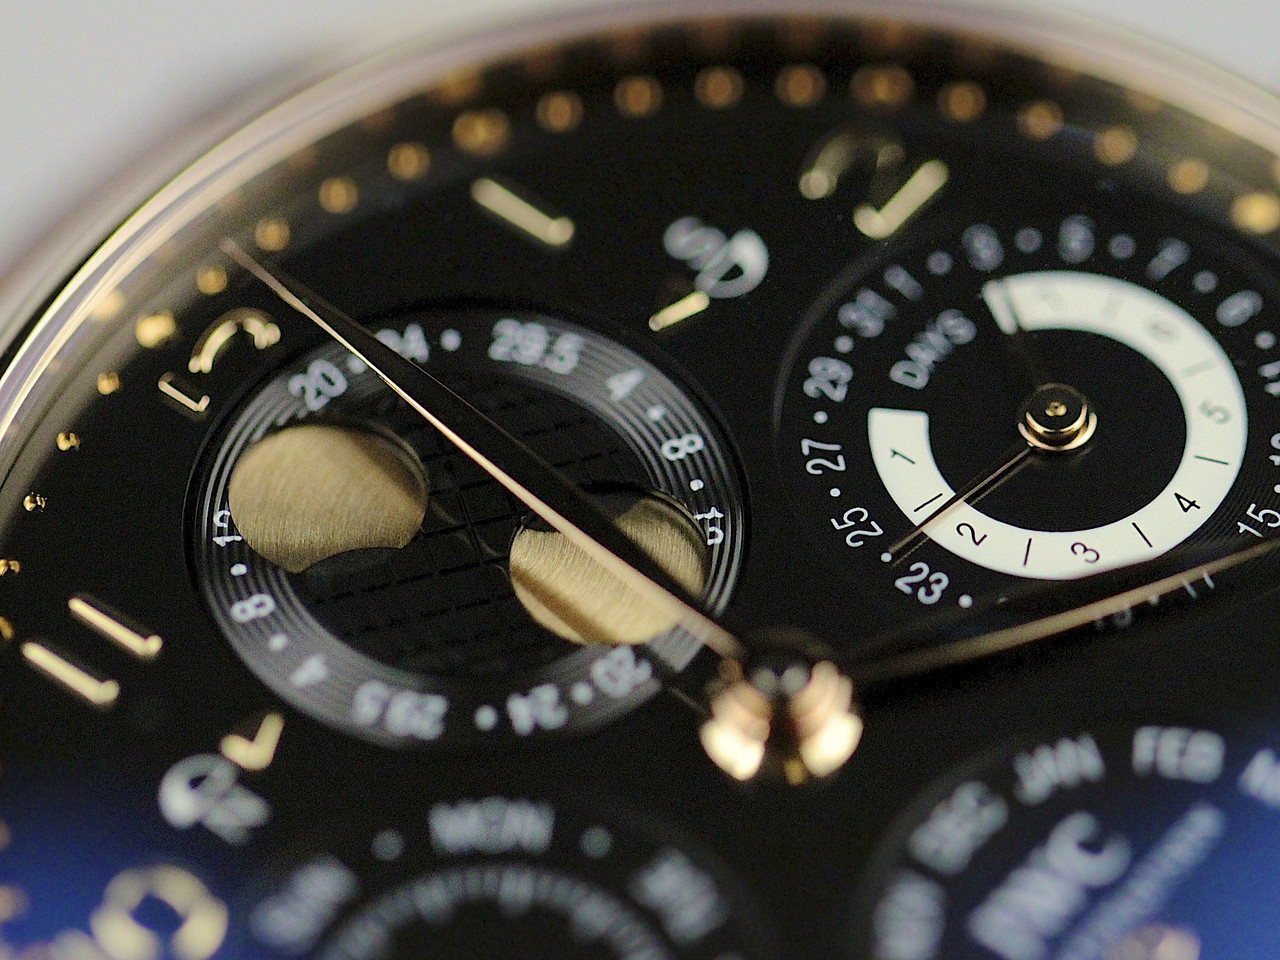 Dial details - Double Moonphase Indicator for both Southern and Northern Hemispheres - IWC Watch - Portuguese Perpetual Calendar Rose Gold IW502119 - Legend of Time - Chicago Watch Center